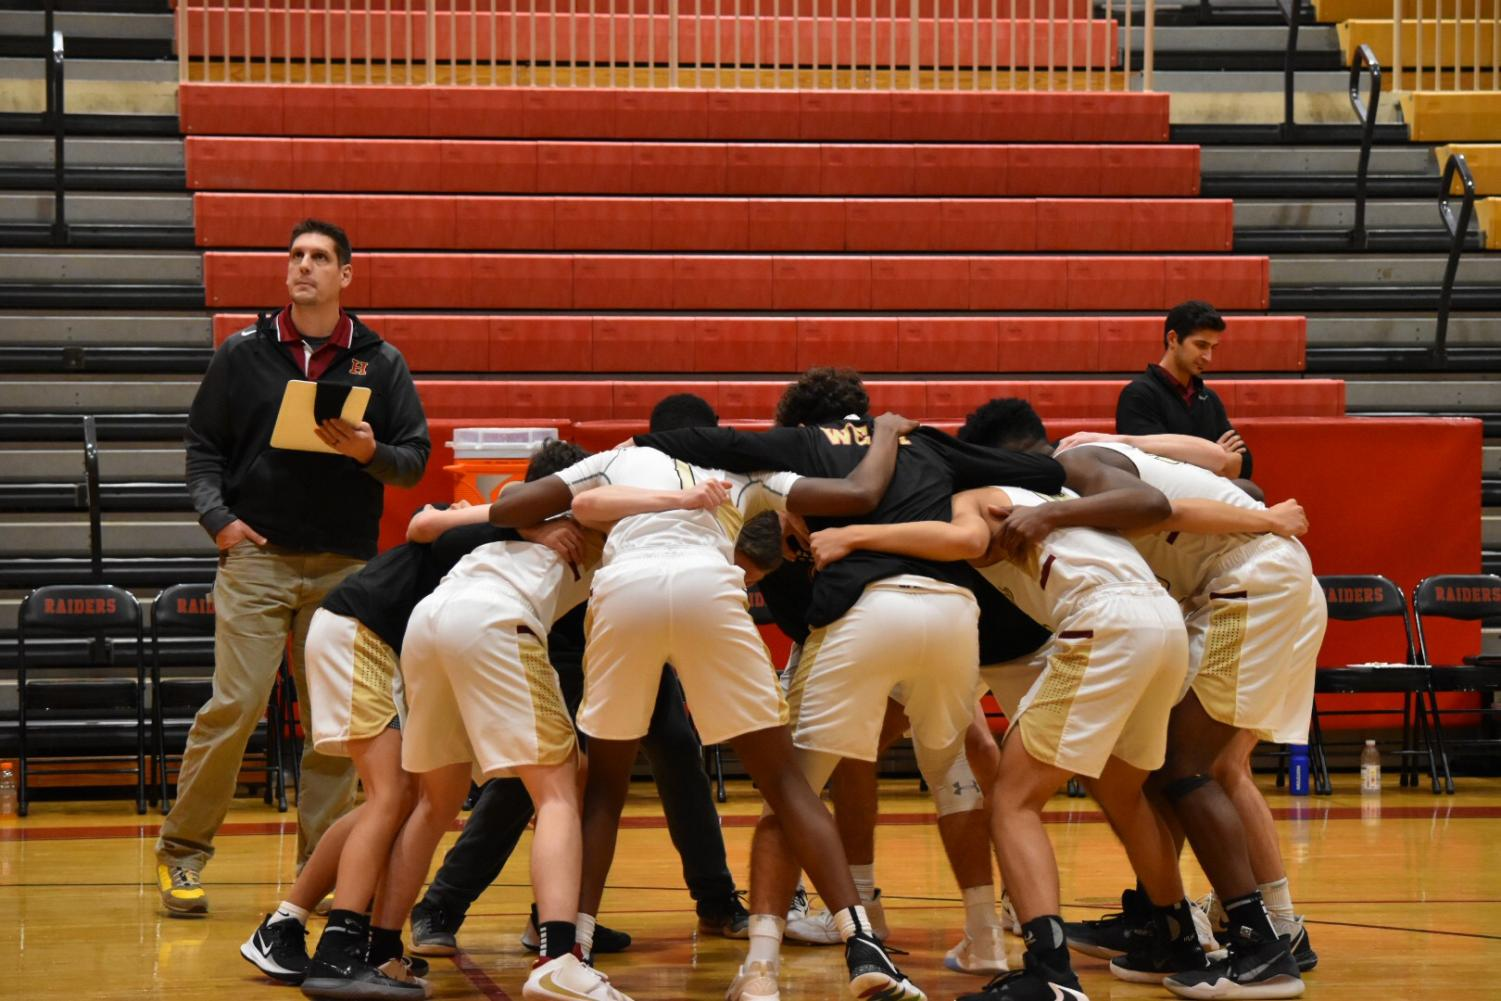 The varsity boys basketball team huddles before battling on the hardwood.